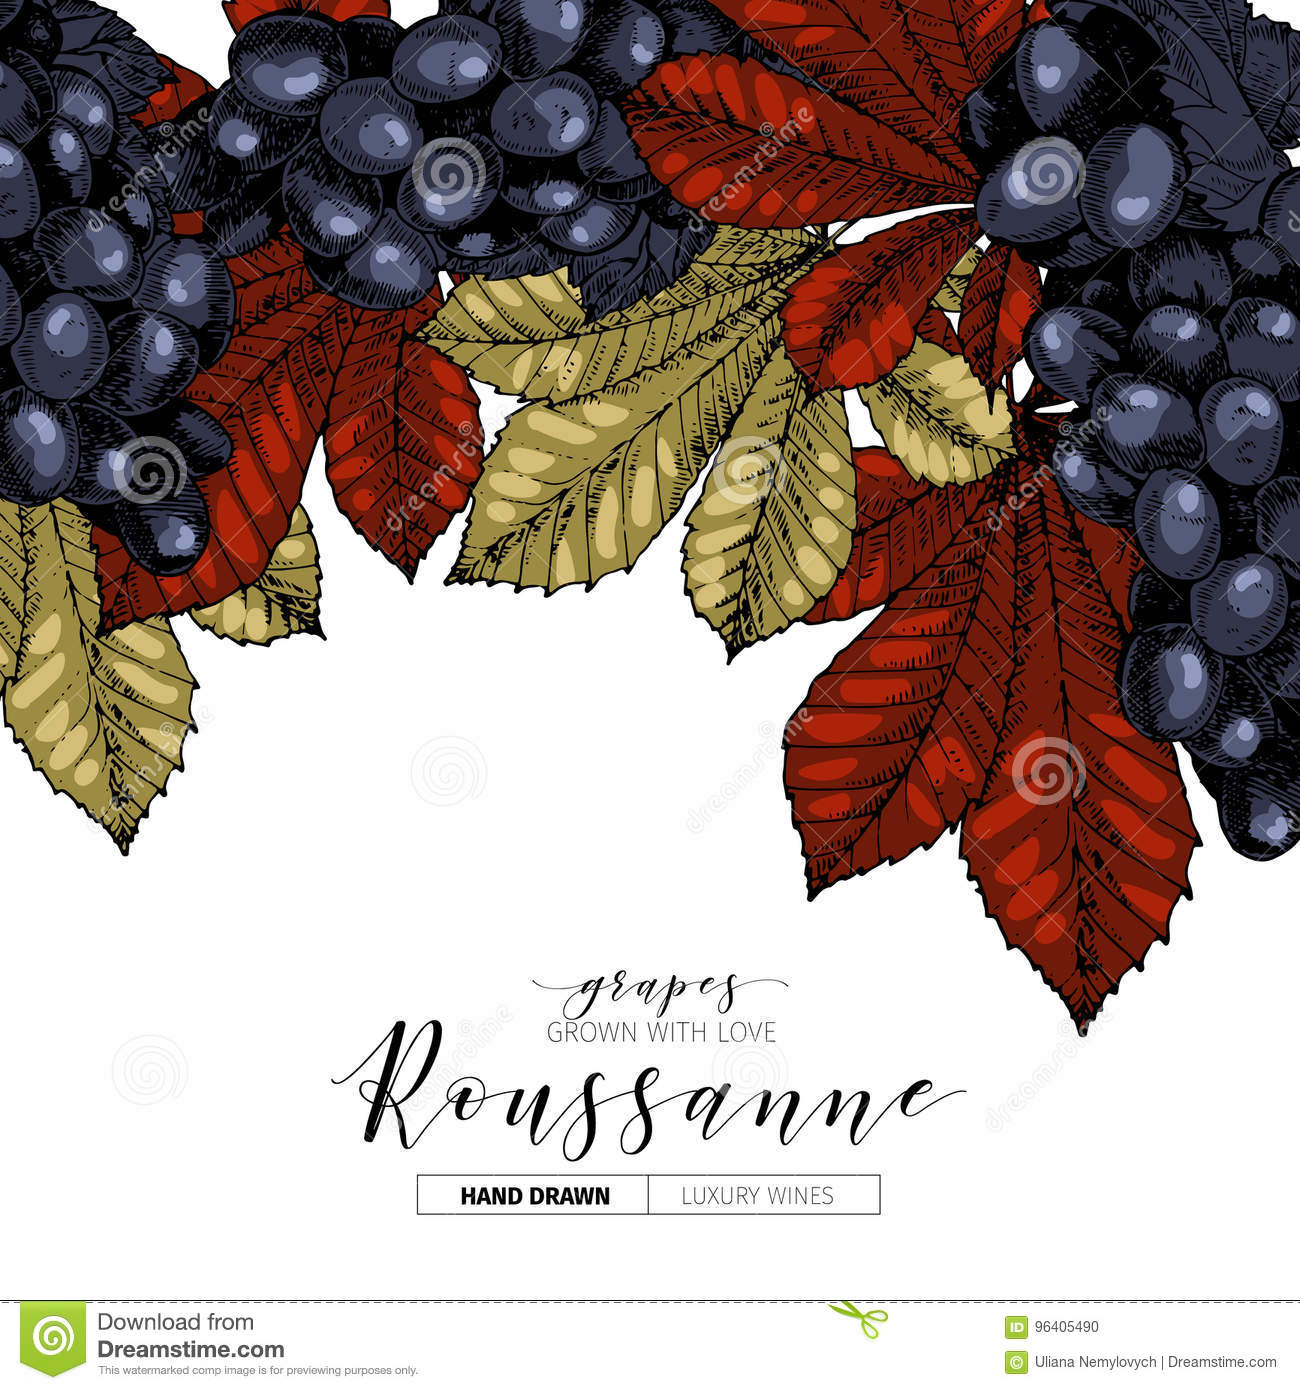 Vector Design Template Of Wine Branding Hand Drawn Colored Grape And Leaves Luxury